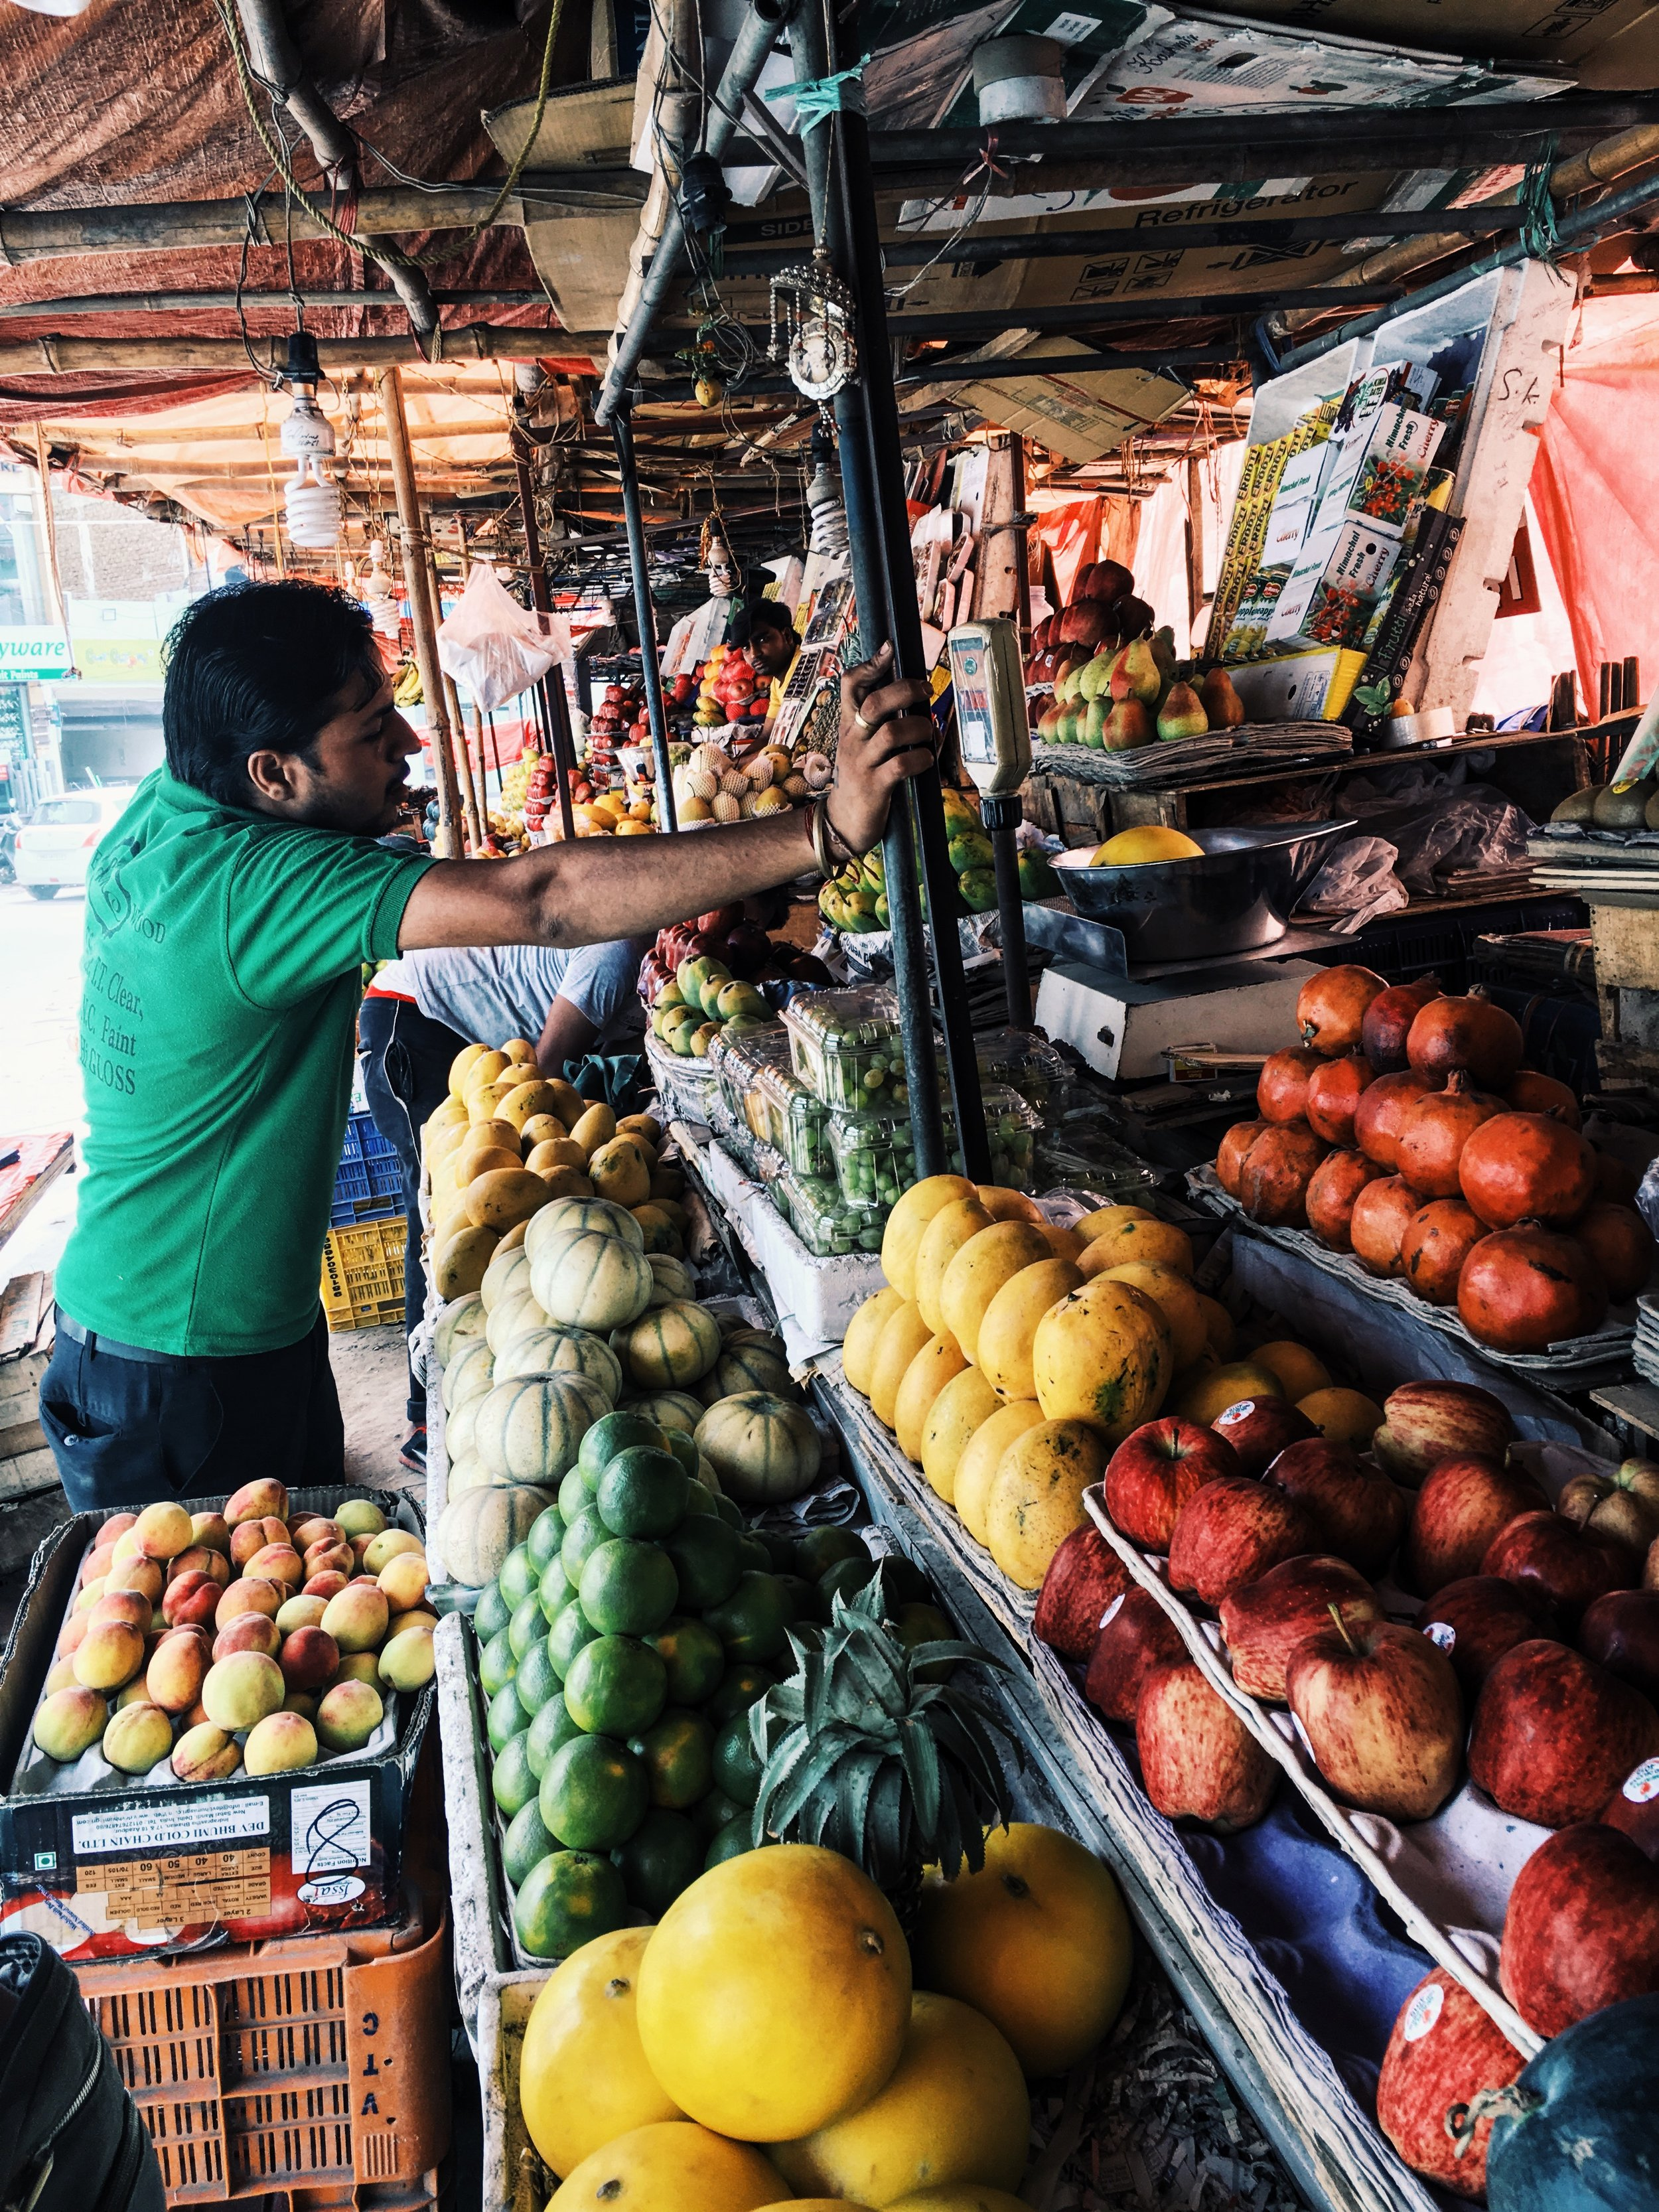 would you just look at the fruit stands outside our house! Delhi- Faridabad, where I'm staying- is divided into sectors, kinda like the hunger games haha! I live in sector 28, the sector known as the fruit market!! it lives up to its name, no doubt!